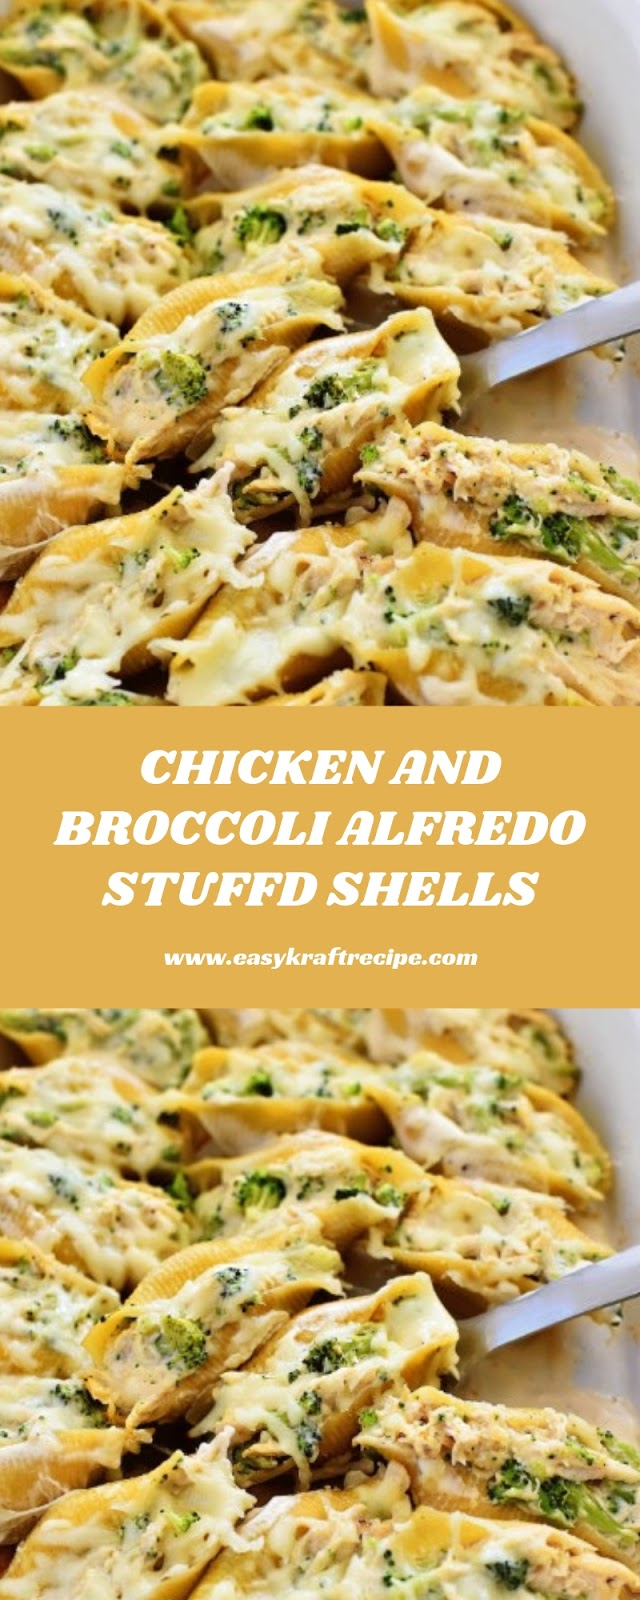 CHICKEN AND BROCCOLI ALFREDO STUFFD SHELLS